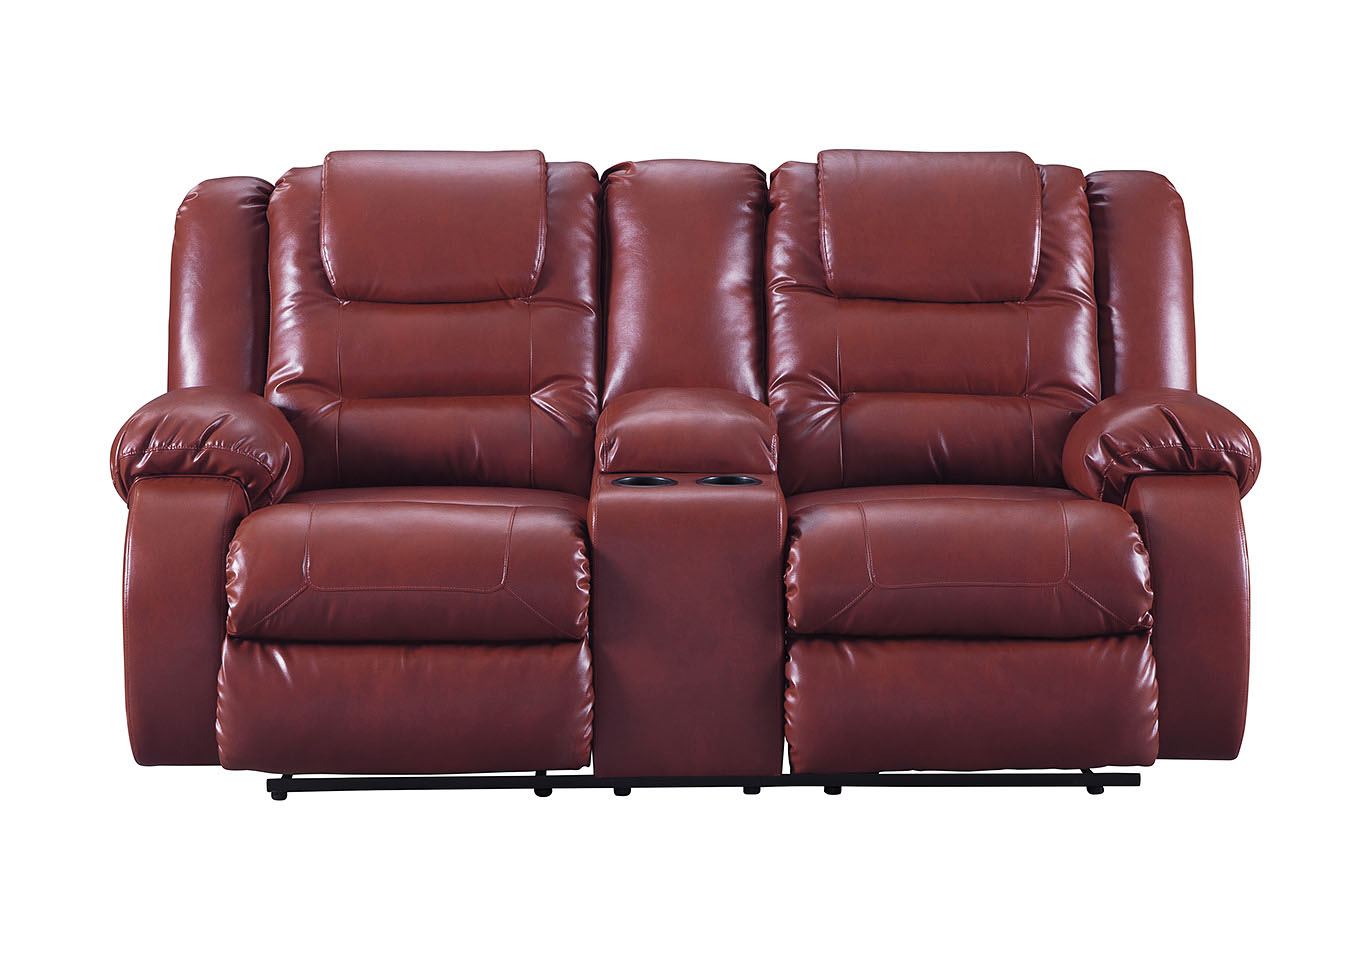 Vacherie Salsa Double Reclining Loveseat w/Console,Signature Design By Ashley